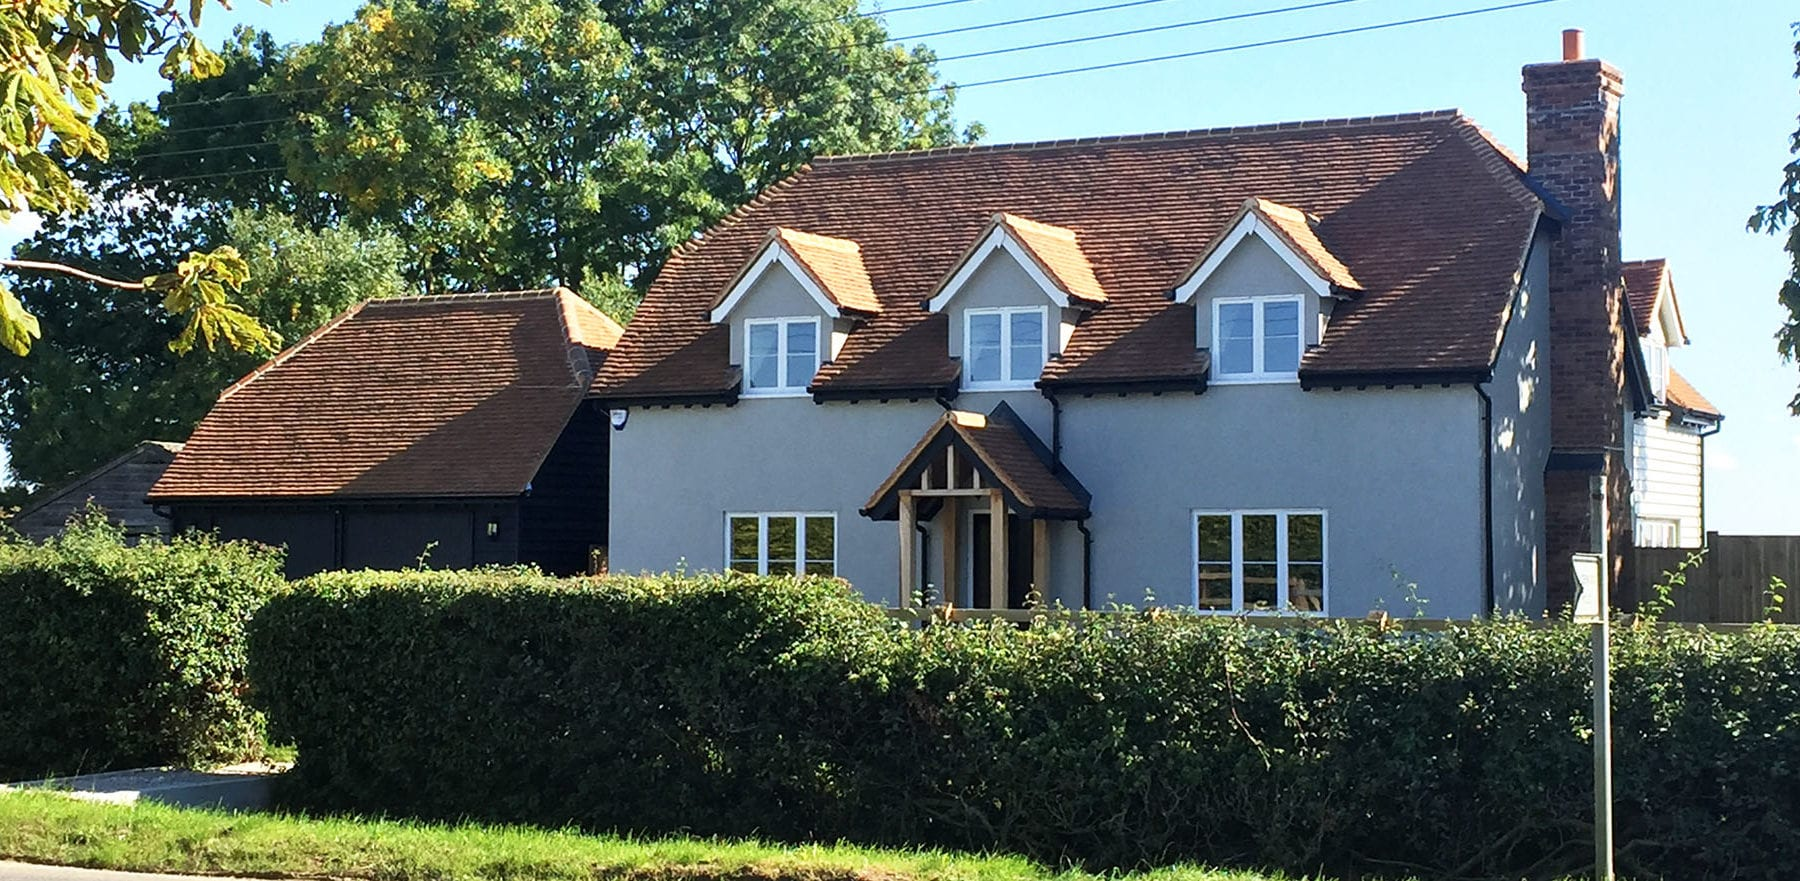 Lifestiles - Handcrafted Foxearth Clay Roof Tiles - Yeldham, England 3